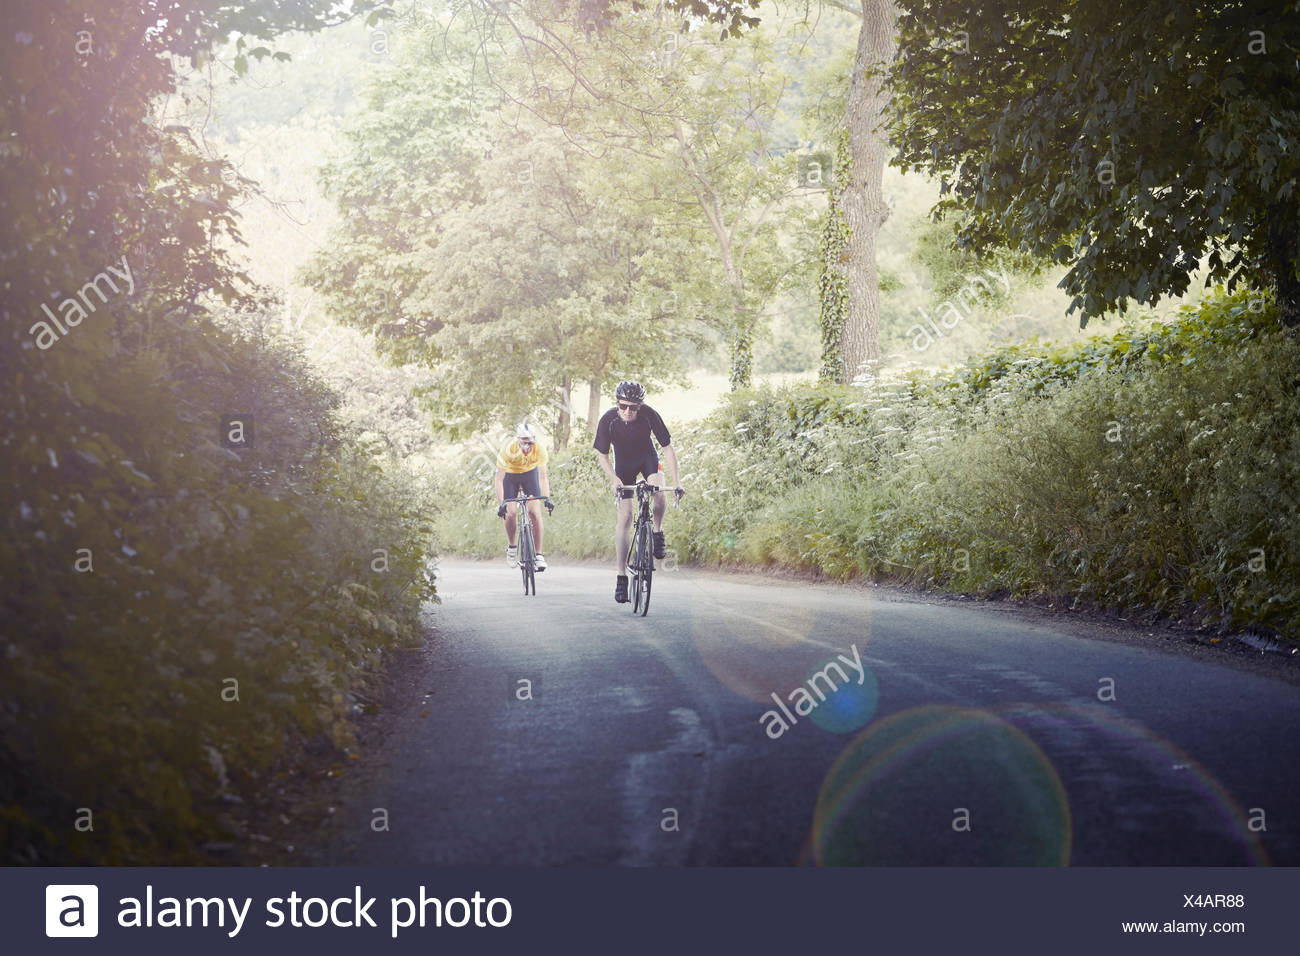 Cyclists riding on leafy countryside road, Cotswolds, UK - Stock Image